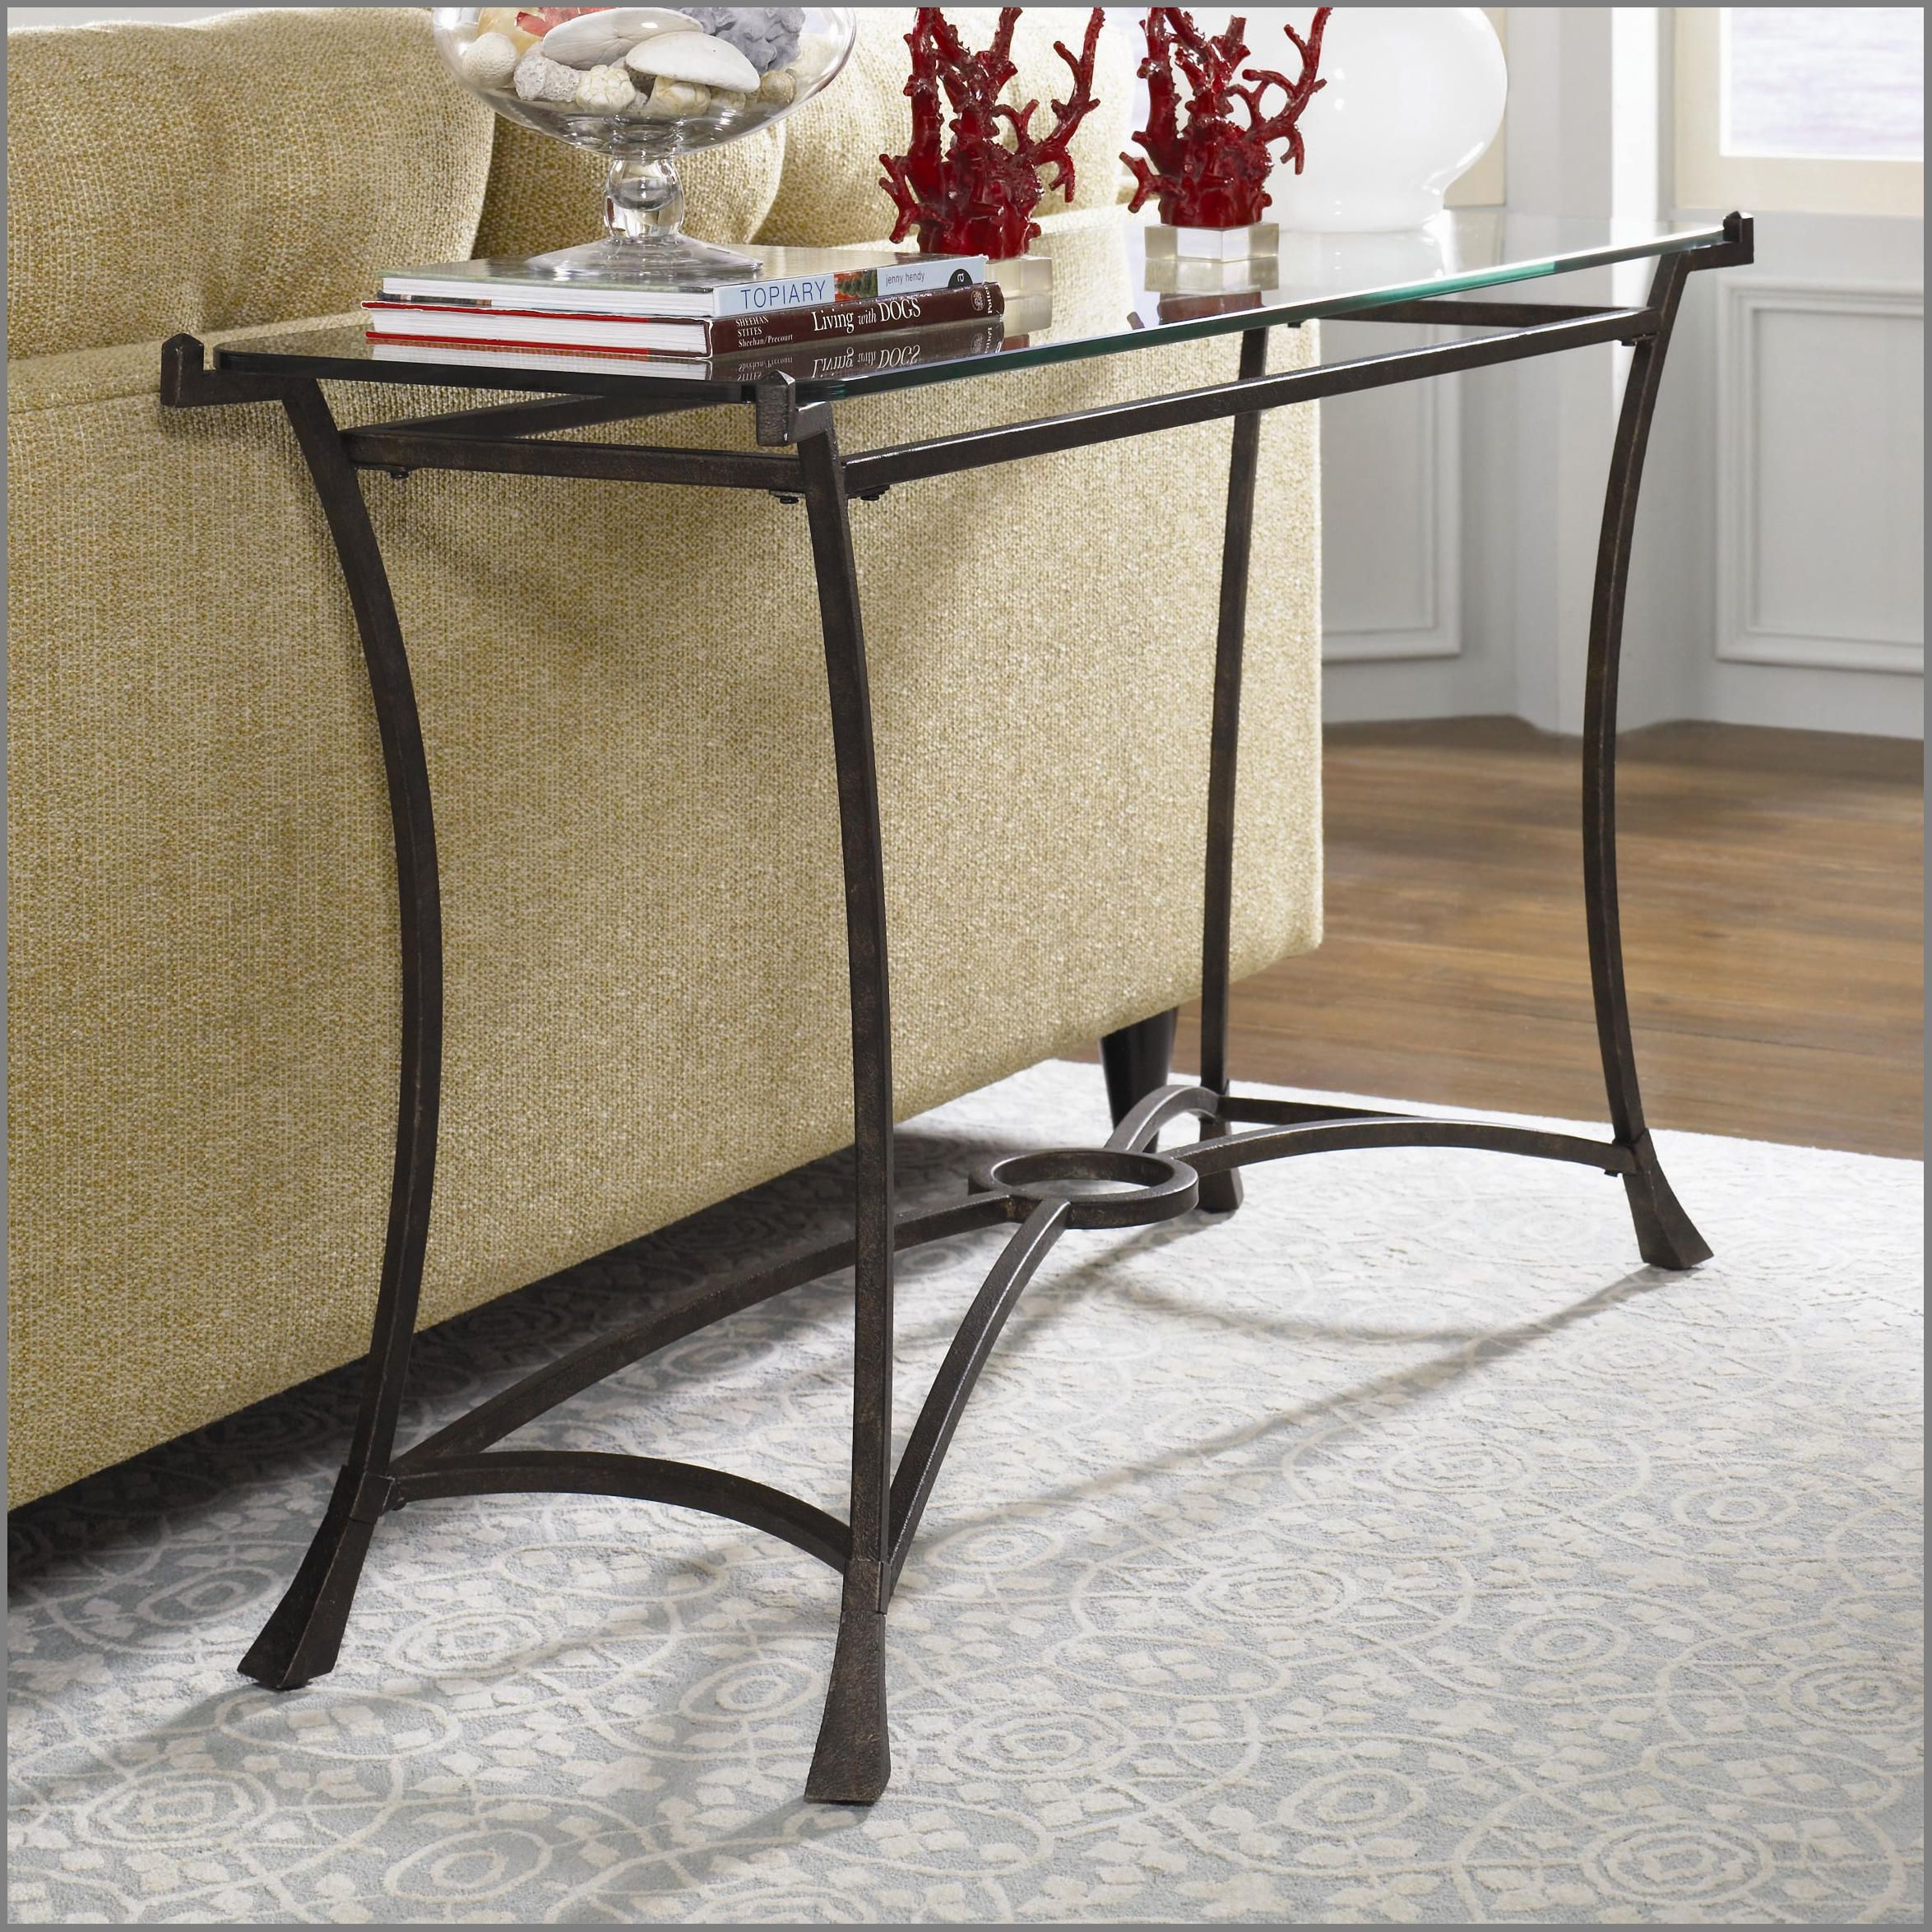 charming koa table the terrific free black wood and glass end decorating ideas kmart mobile coupons used ashley furniture painted sofa corona occasional tables complaints lamps